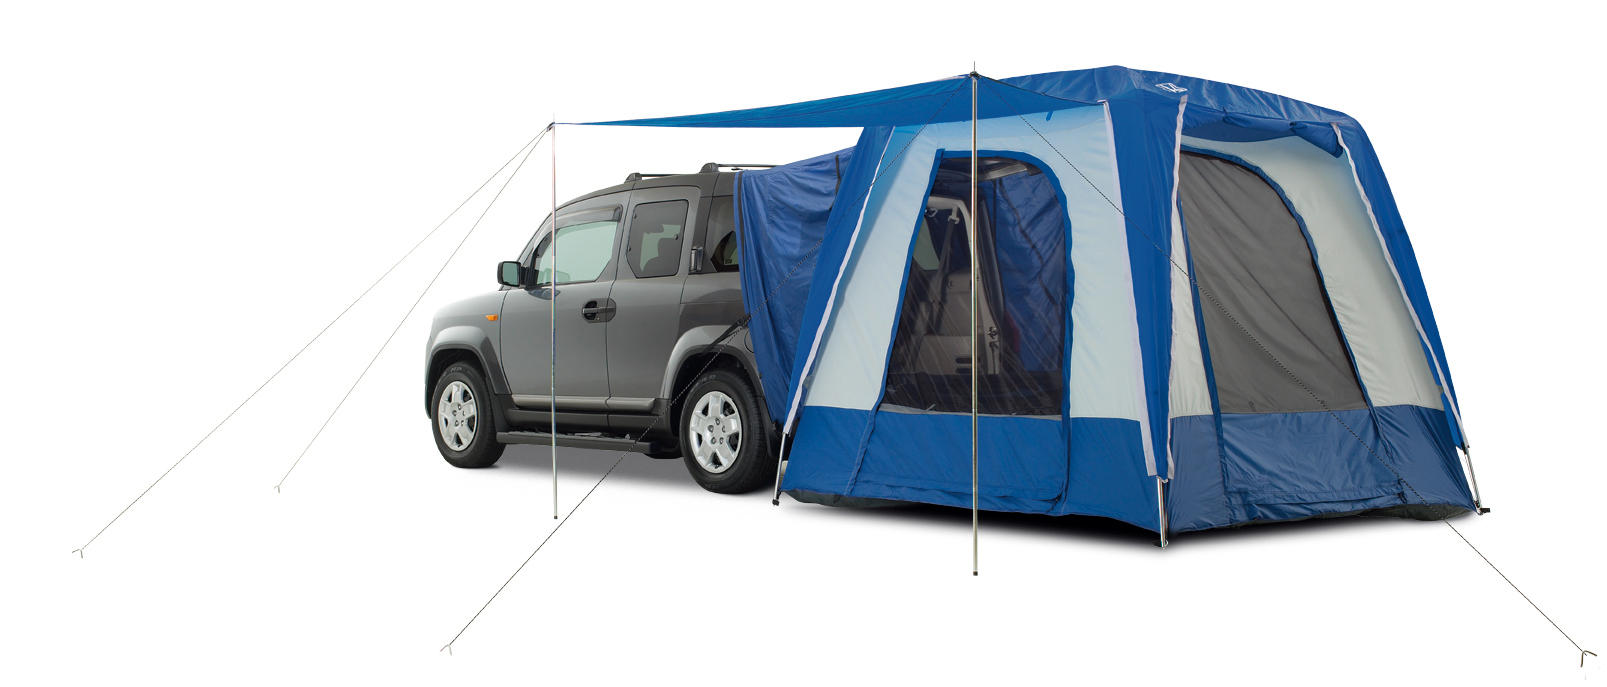 Ridgeline Truck Tent Camping Page 3 Honda Owners Club Forums